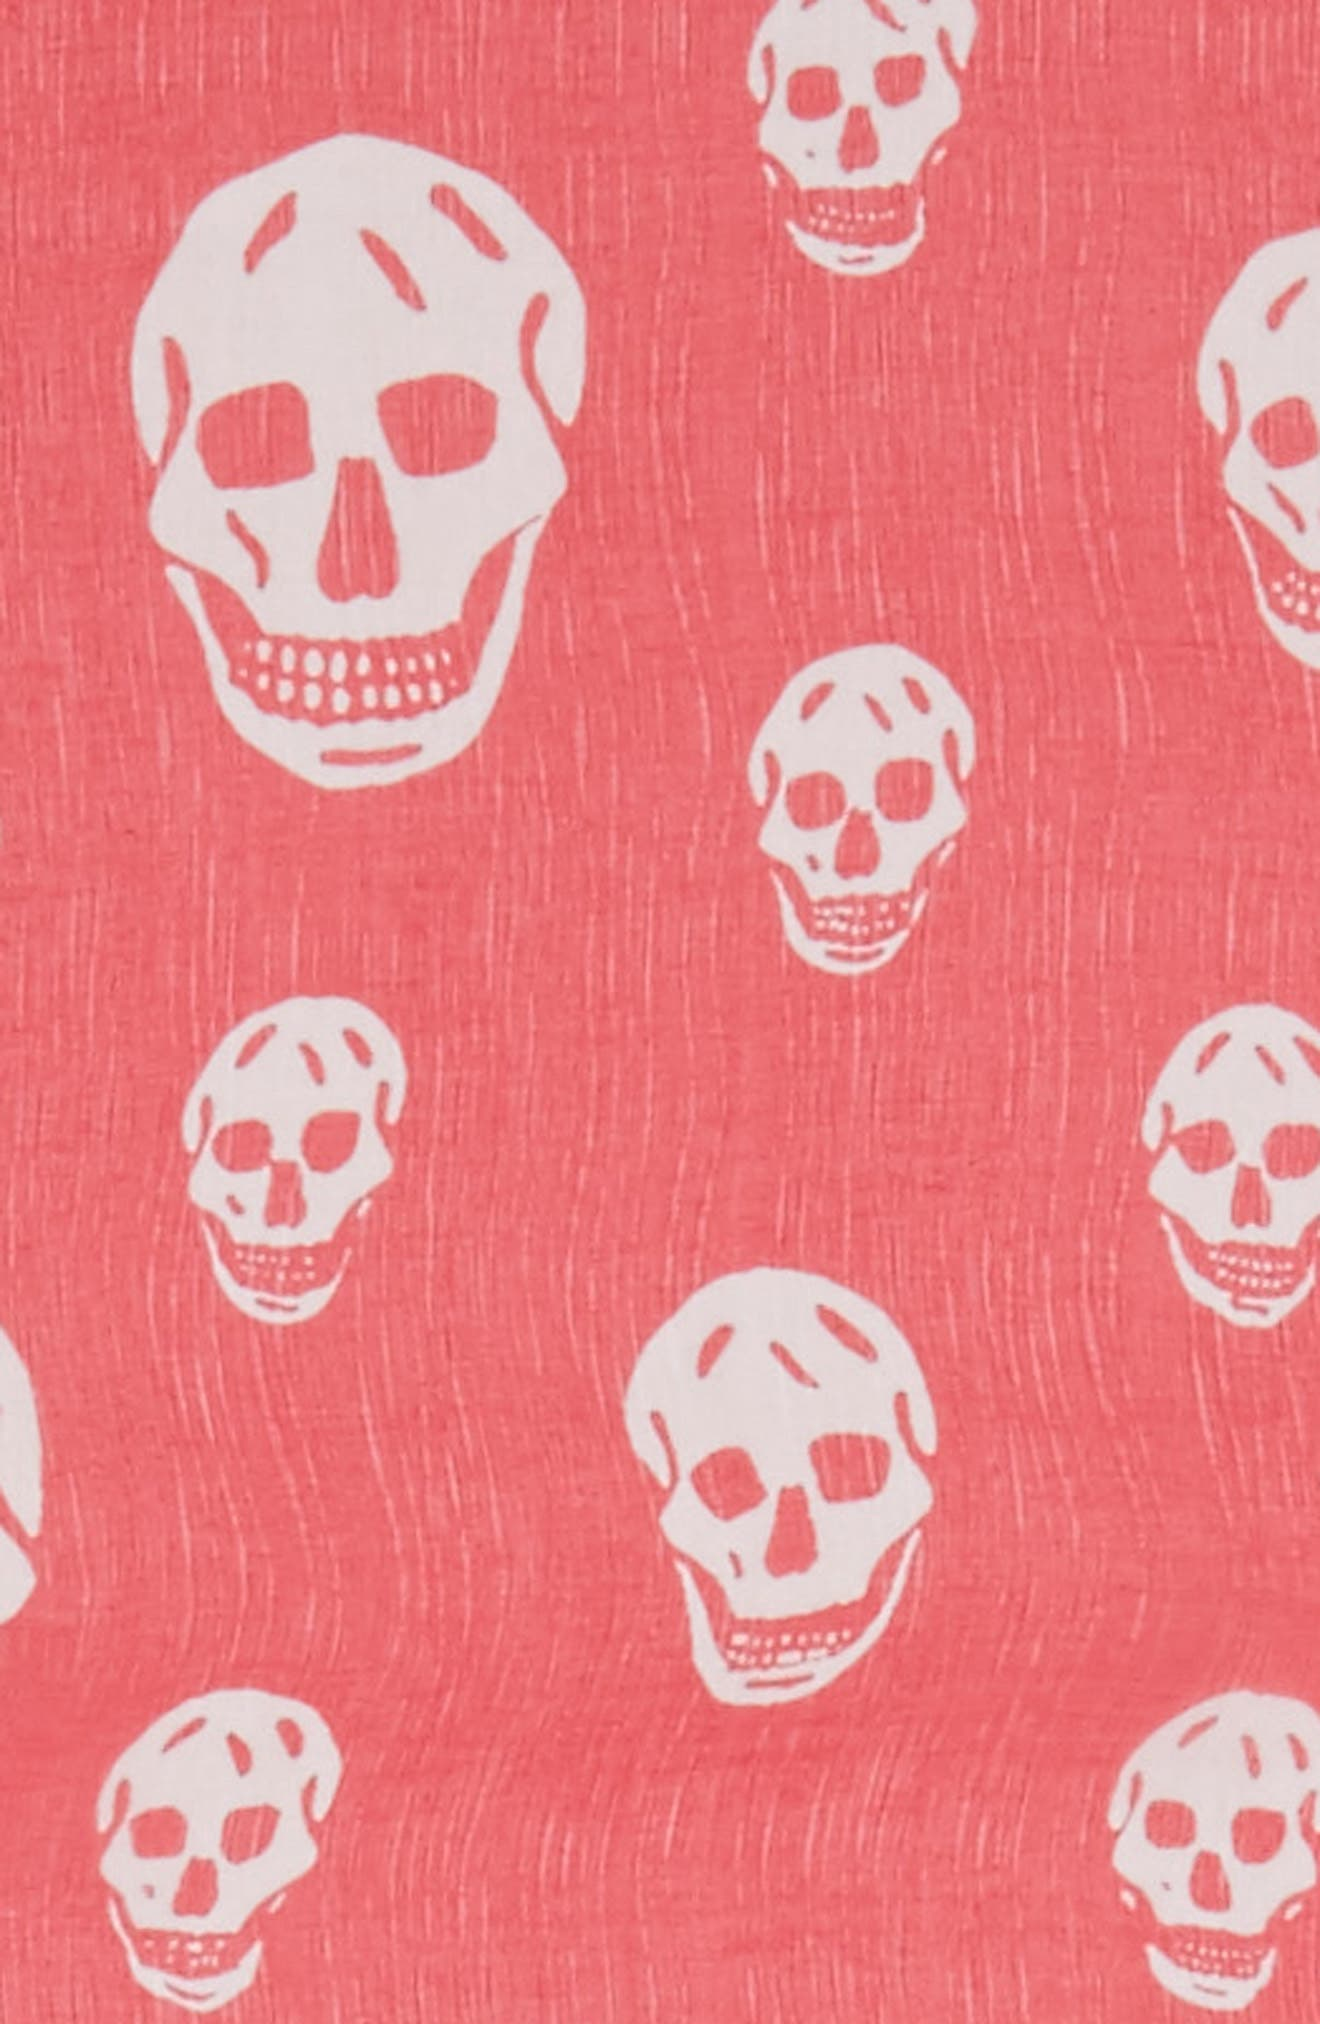 'Skull' Chiffon Scarf,                             Alternate thumbnail 4, color,                             CORAL/ BEIGE